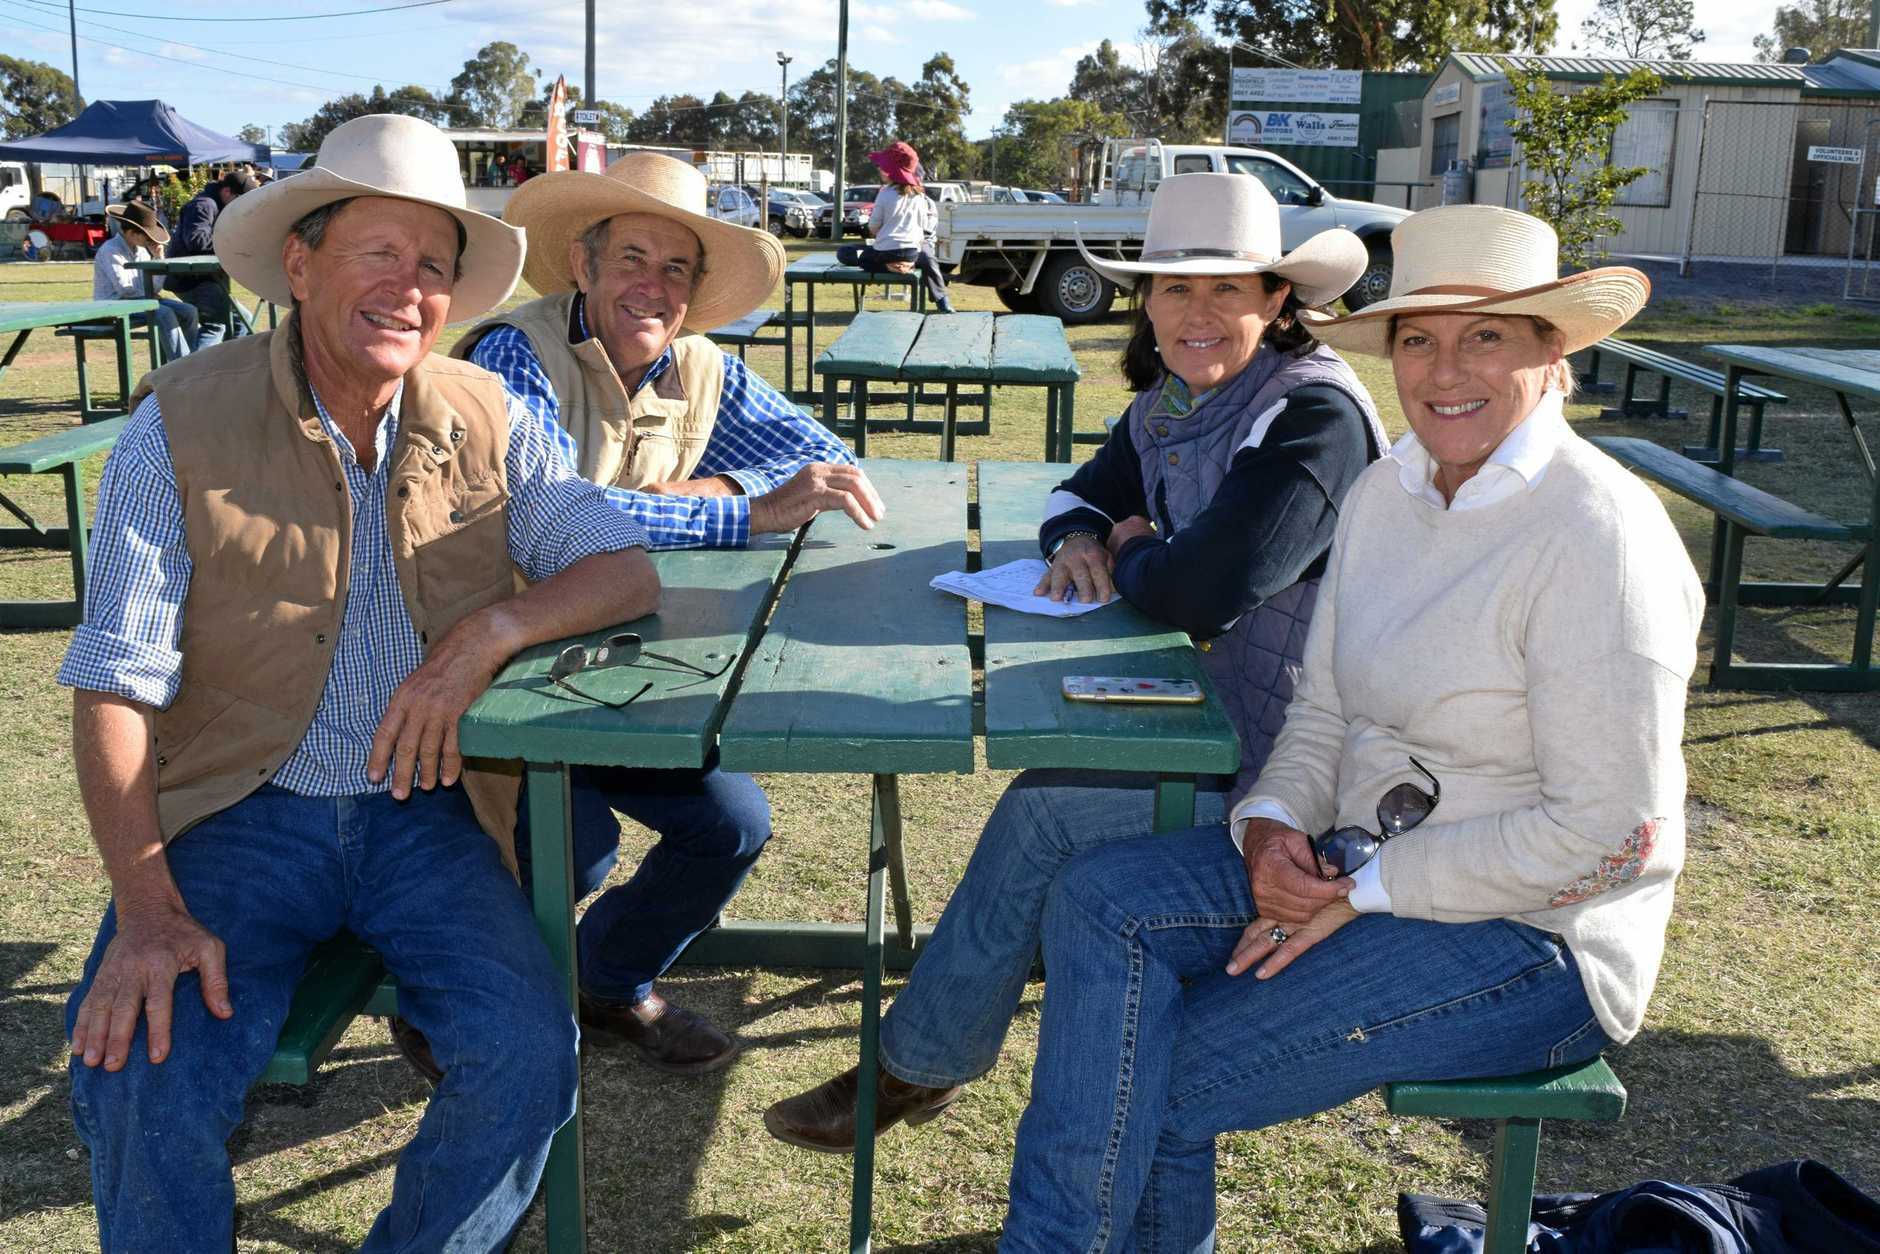 (From left) Terry Hanigan, Roger Boshammer, Tam Law and Robyn Hanigan at the Campdraft Super Series at Warwick Showgrounds.